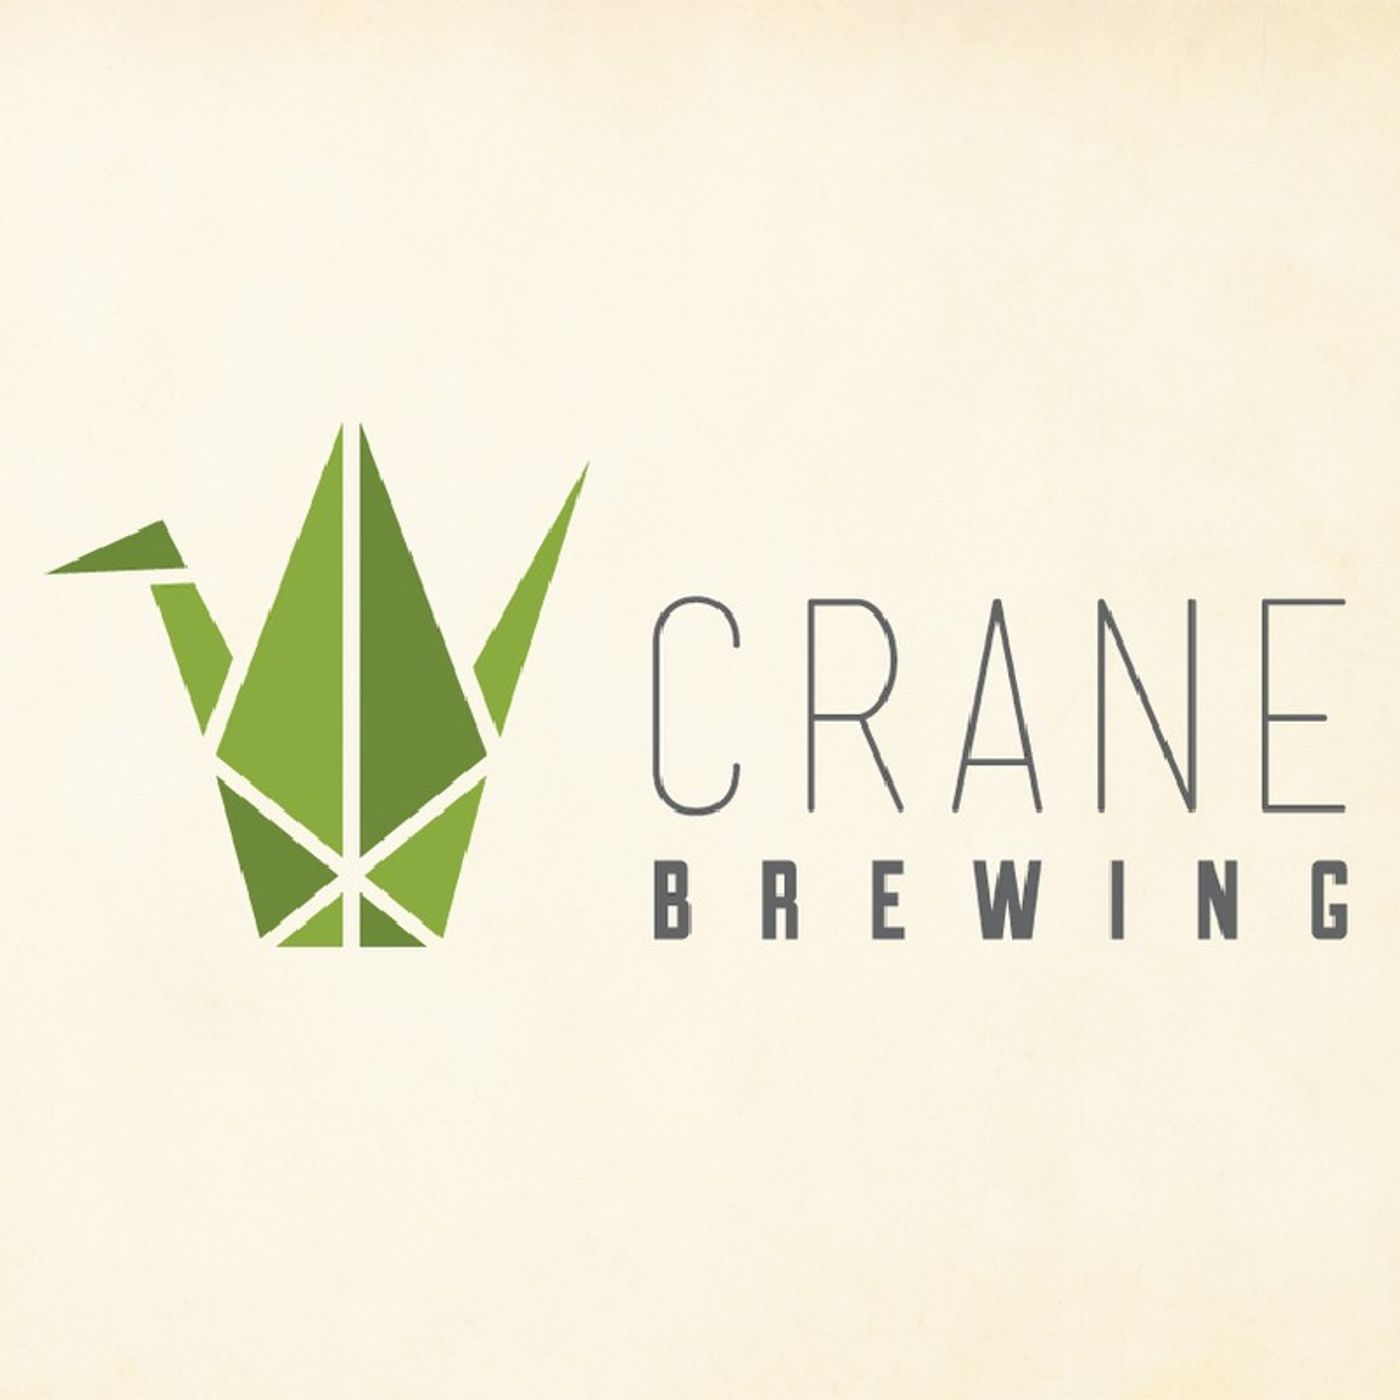 Crane Brewing Company Discusses Kansas City, Business, and The Coronavirus